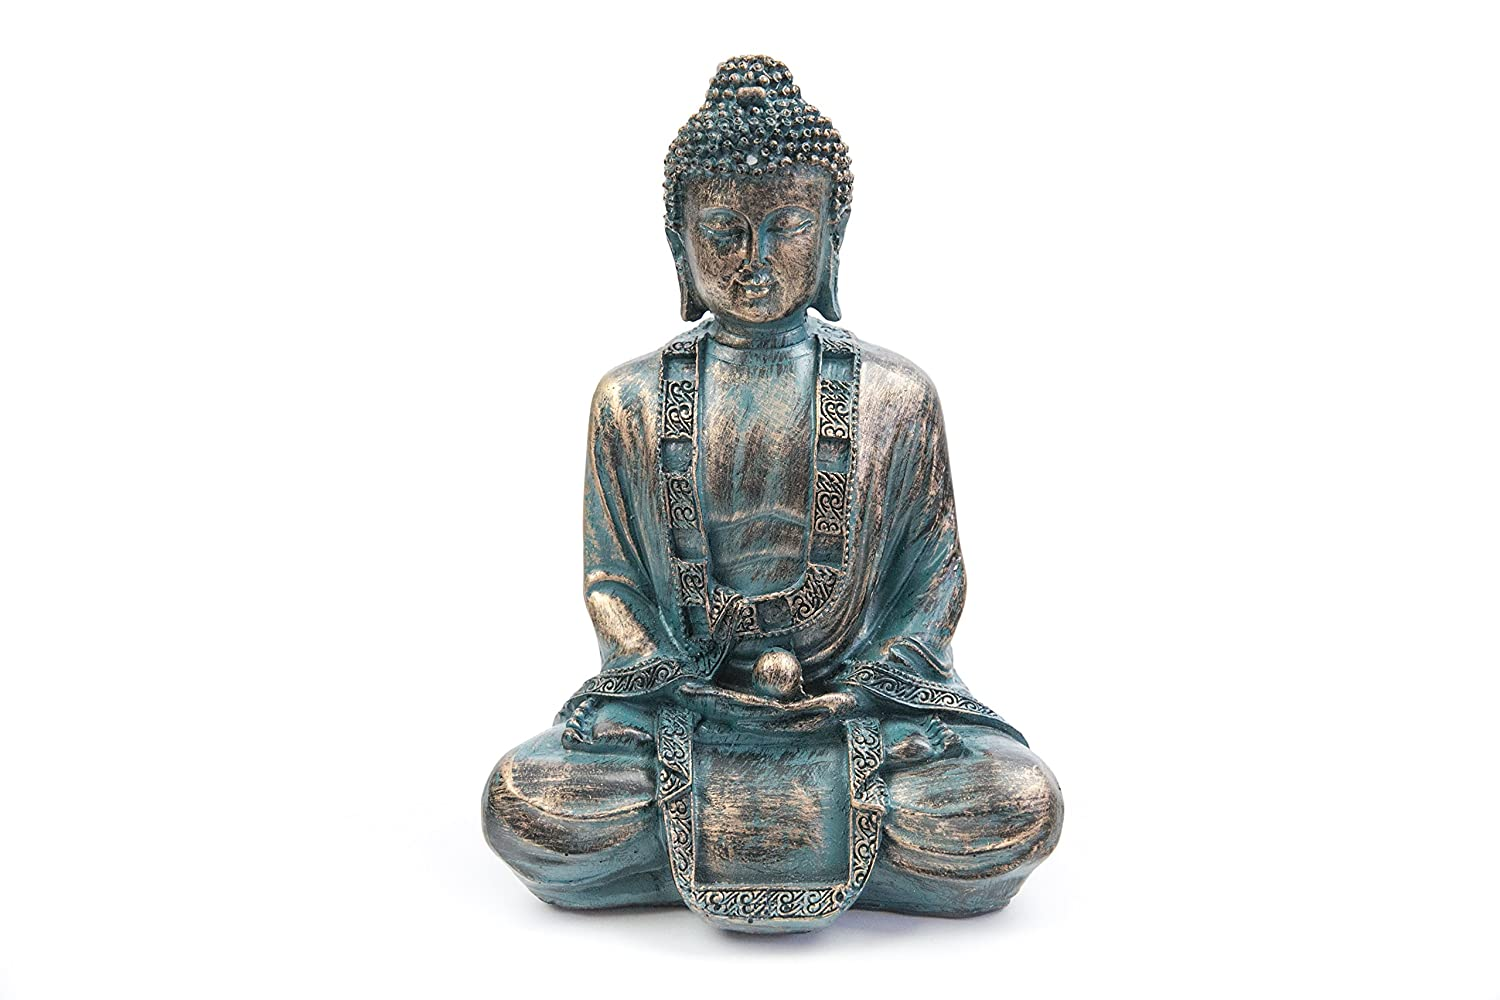 Buddhist Home Decor Top 10 Best Buddha Statues For Home And Garden 2016 2017 On Flipboard